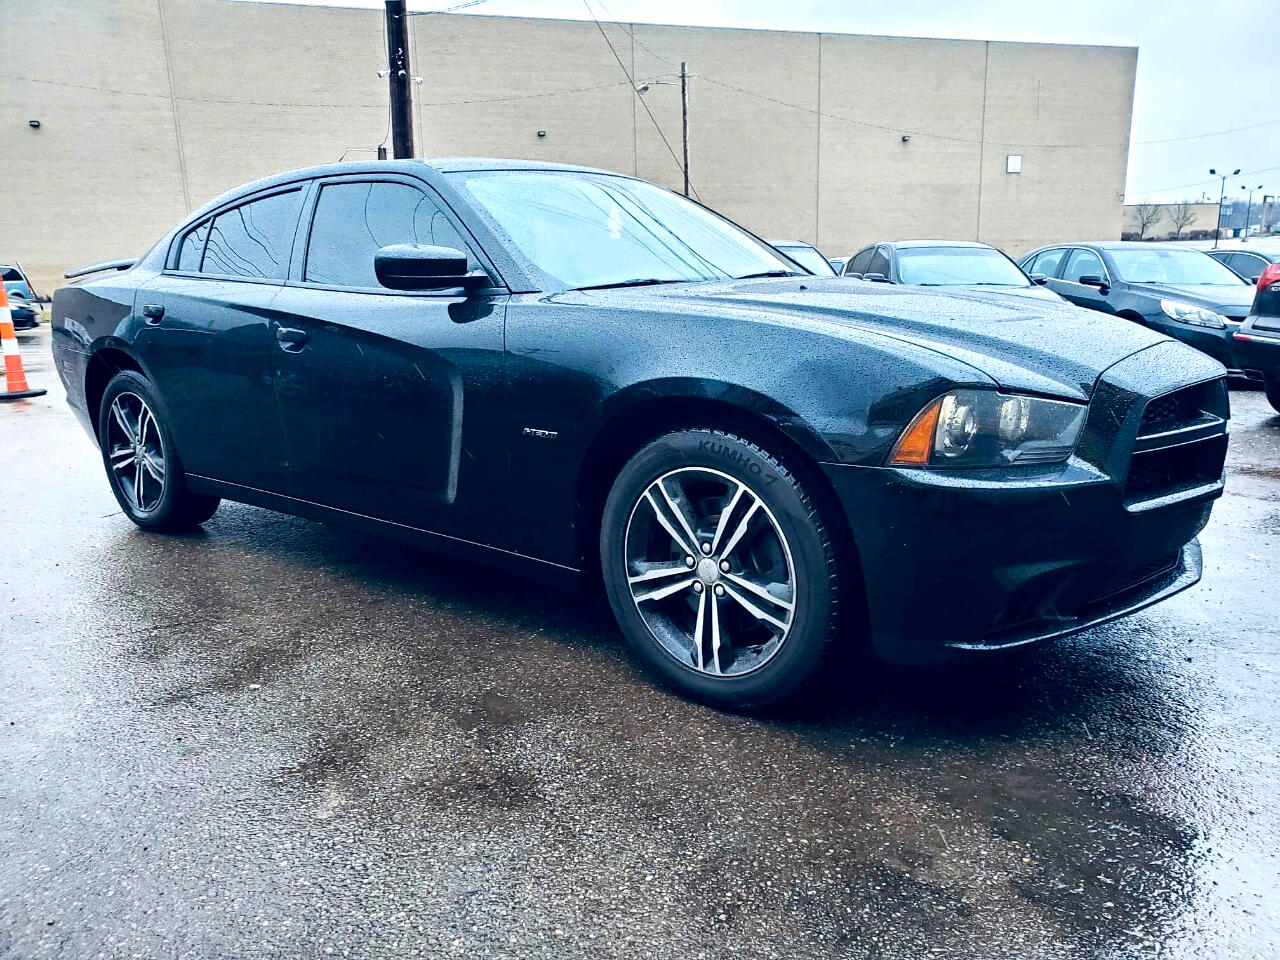 Dodge Charger R/T AWD 2014